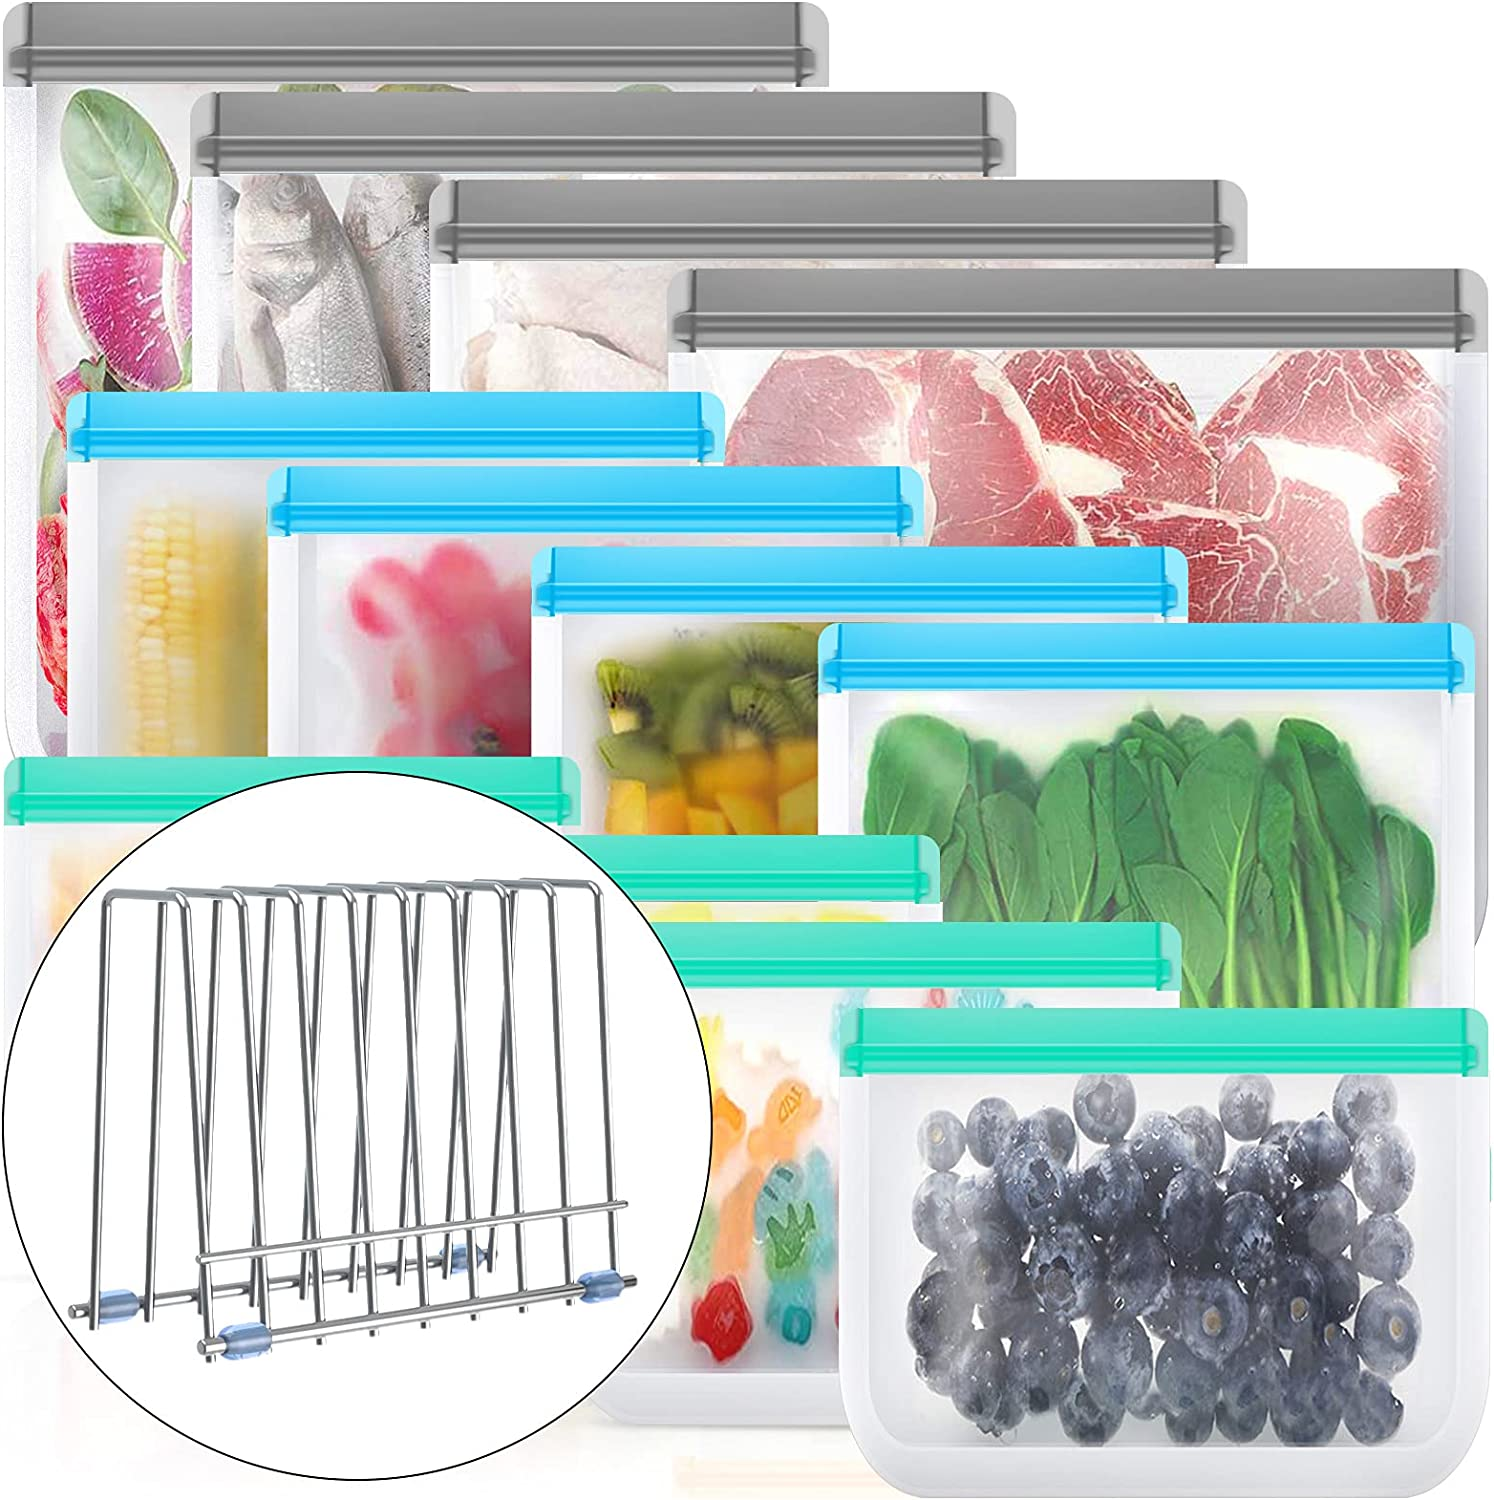 Reusable Food Storage Bags, BPA Free PEVA Reusable Freezer Bags,Reusable Gallon Bags, Reusable Sandwich Bags, Silicone Food Bags for Meat Fruit Veggies (12+1 Pack - 4 Gallon 4 Sandwich 4 Snack 1 Rack)